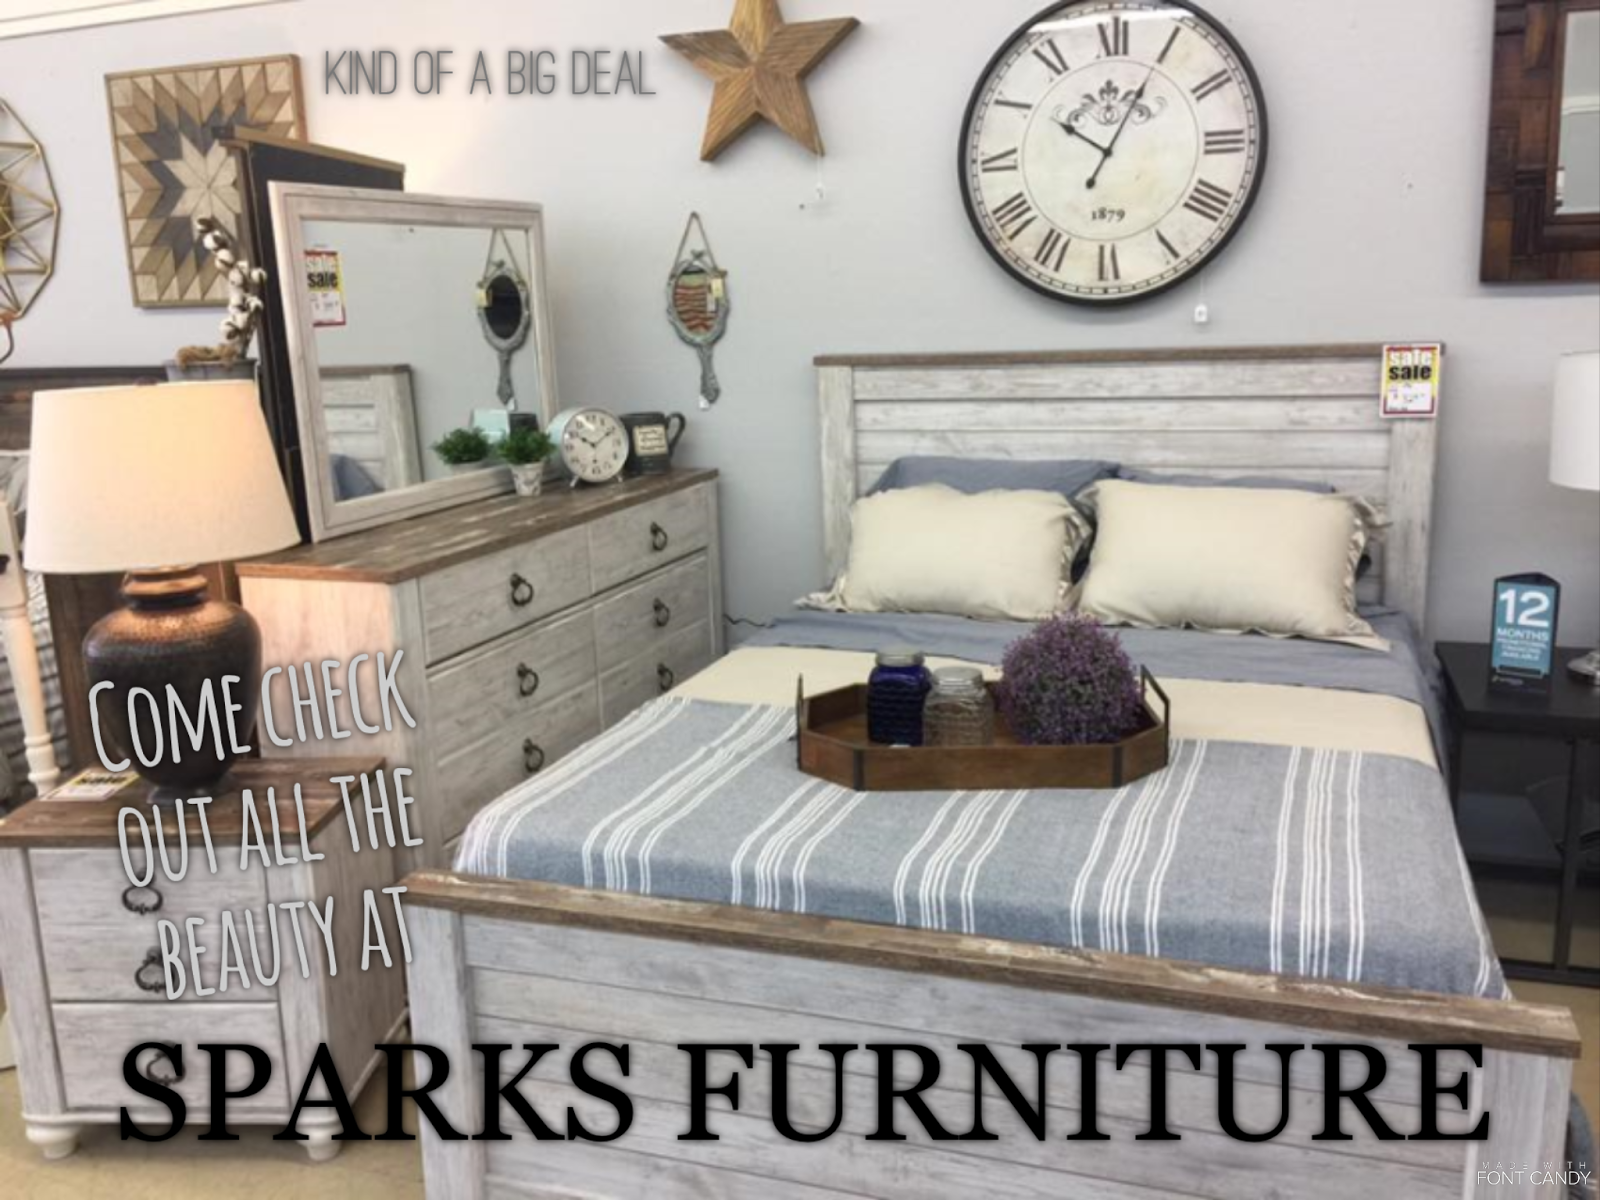 SPARKS FURNITURE On Heber Cityu0027s Main Street Is Offering A 10% Off Coupon.  If You Mention HeathsHomes Blog You Get An Additional 10% Off.